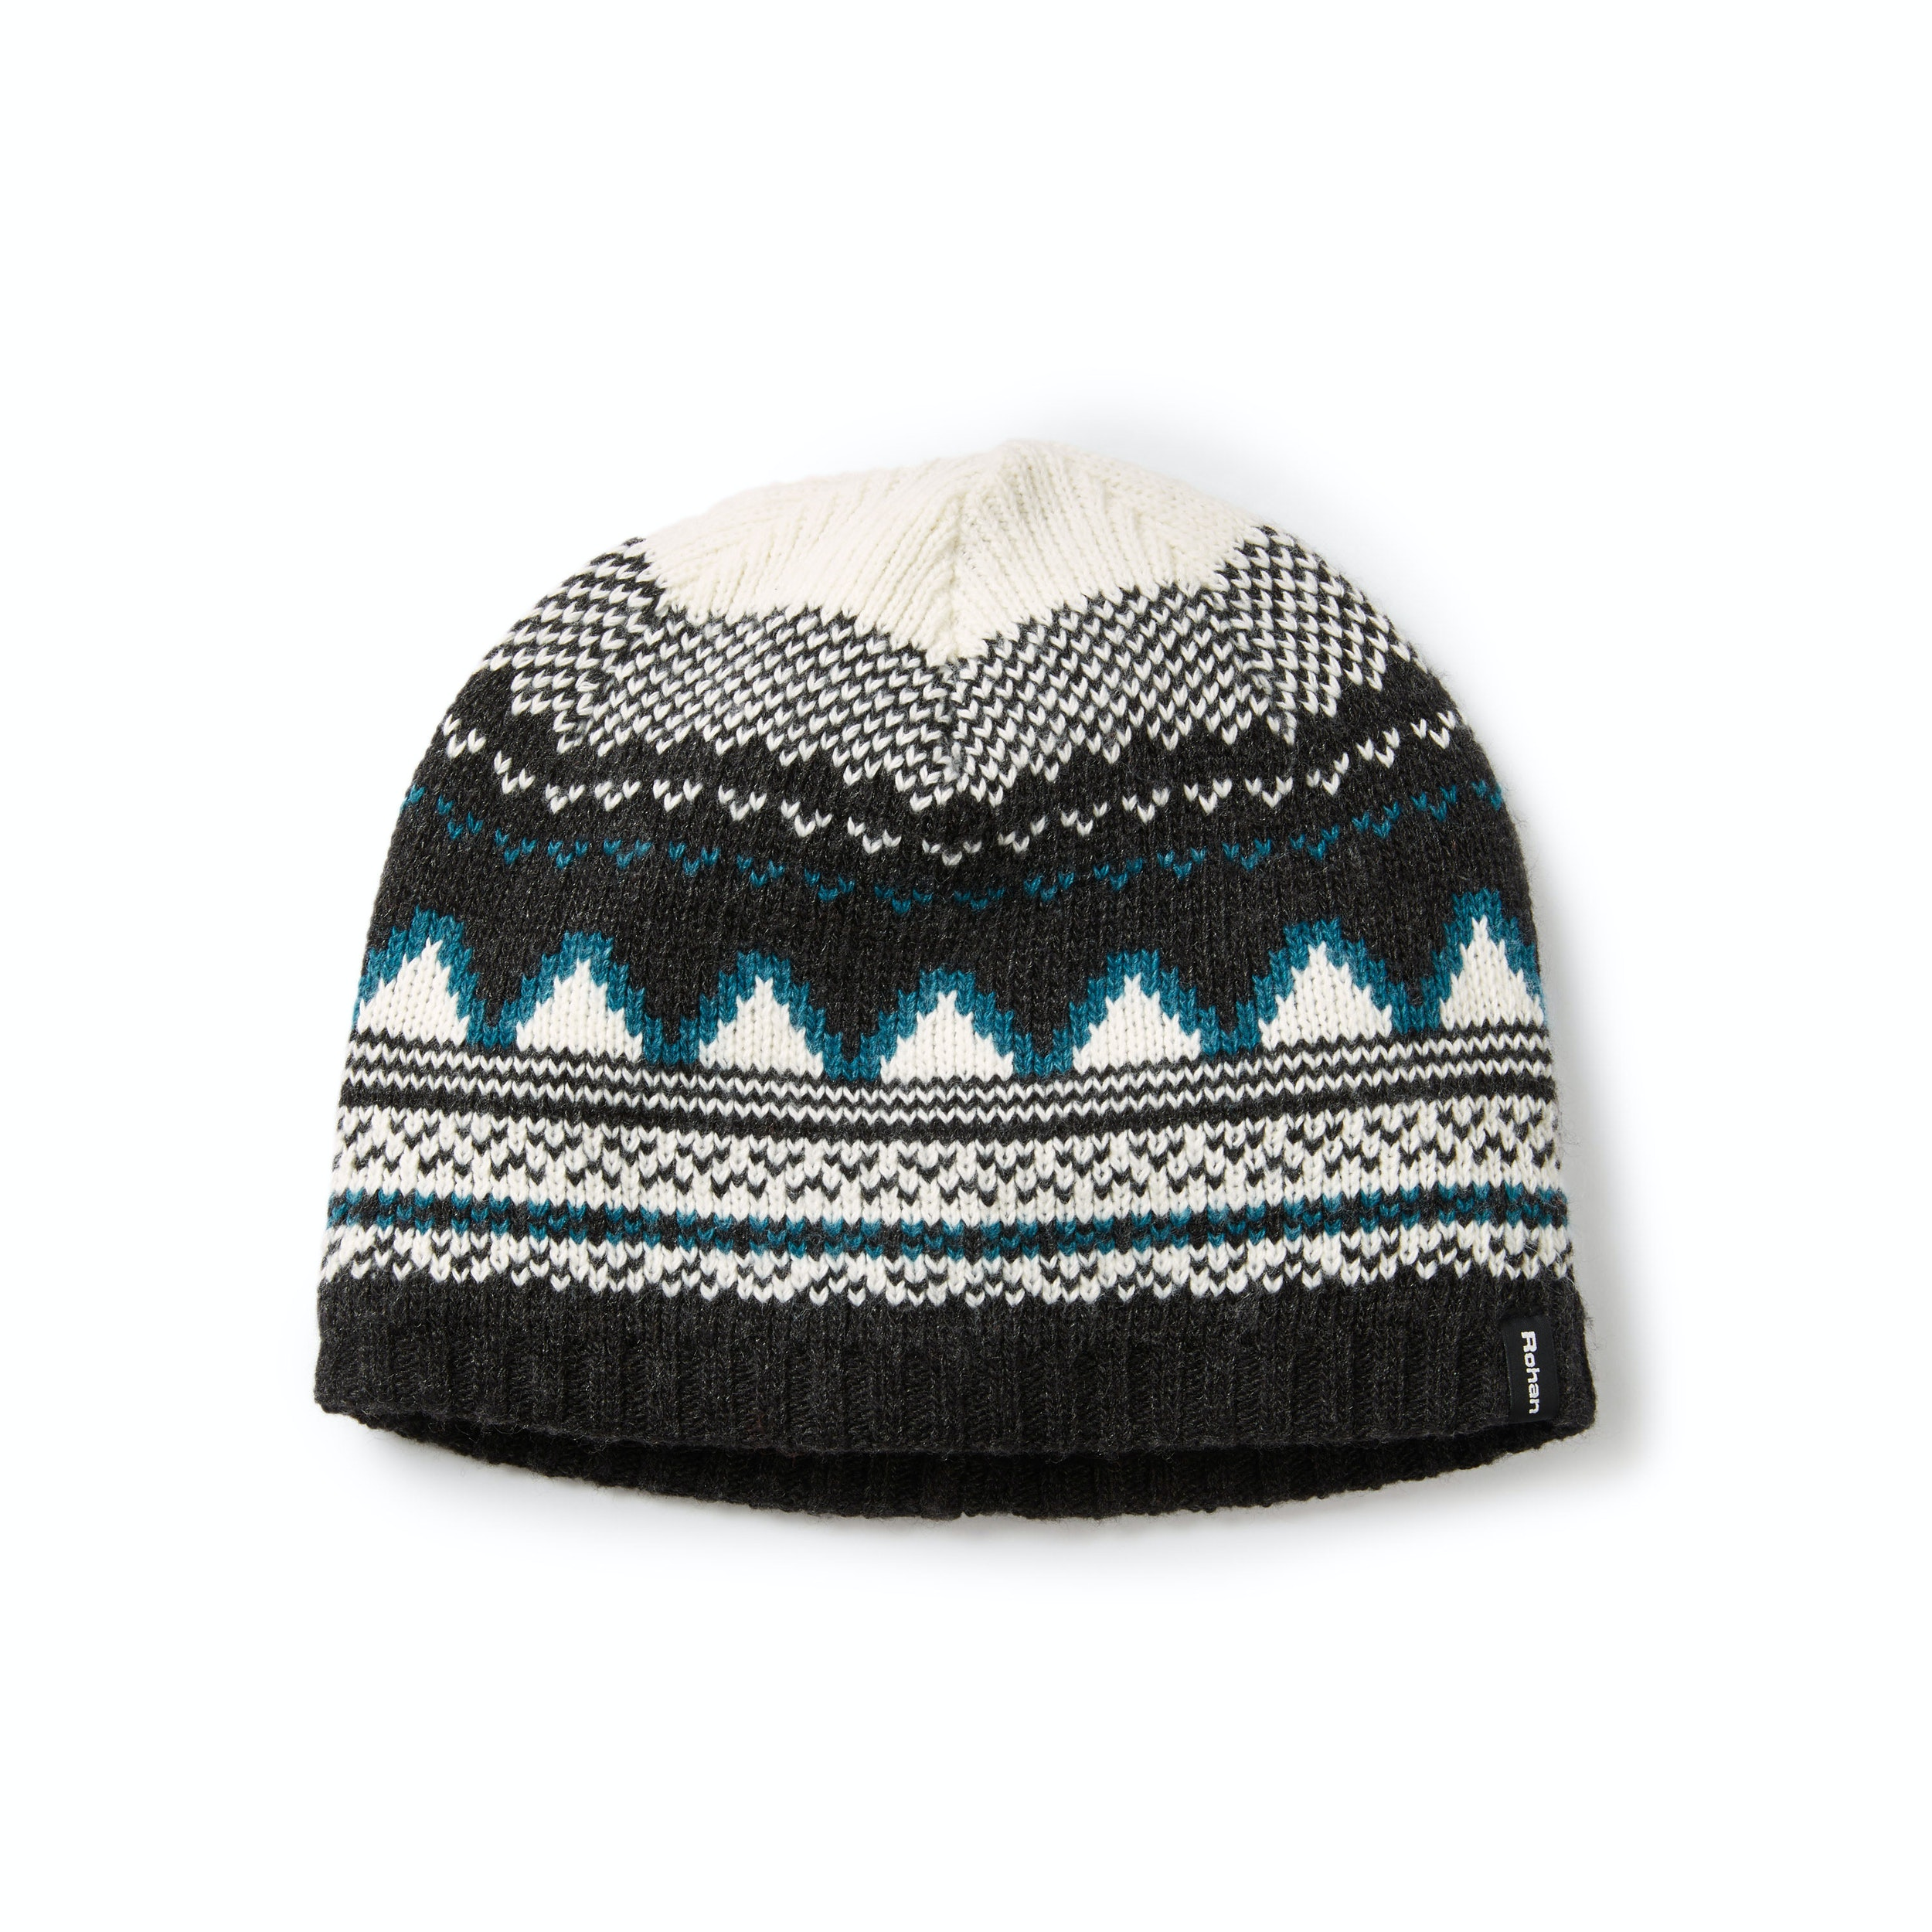 a4b68d8dcf2 Women s Isla Hat - Technical fairisle patterned hat.